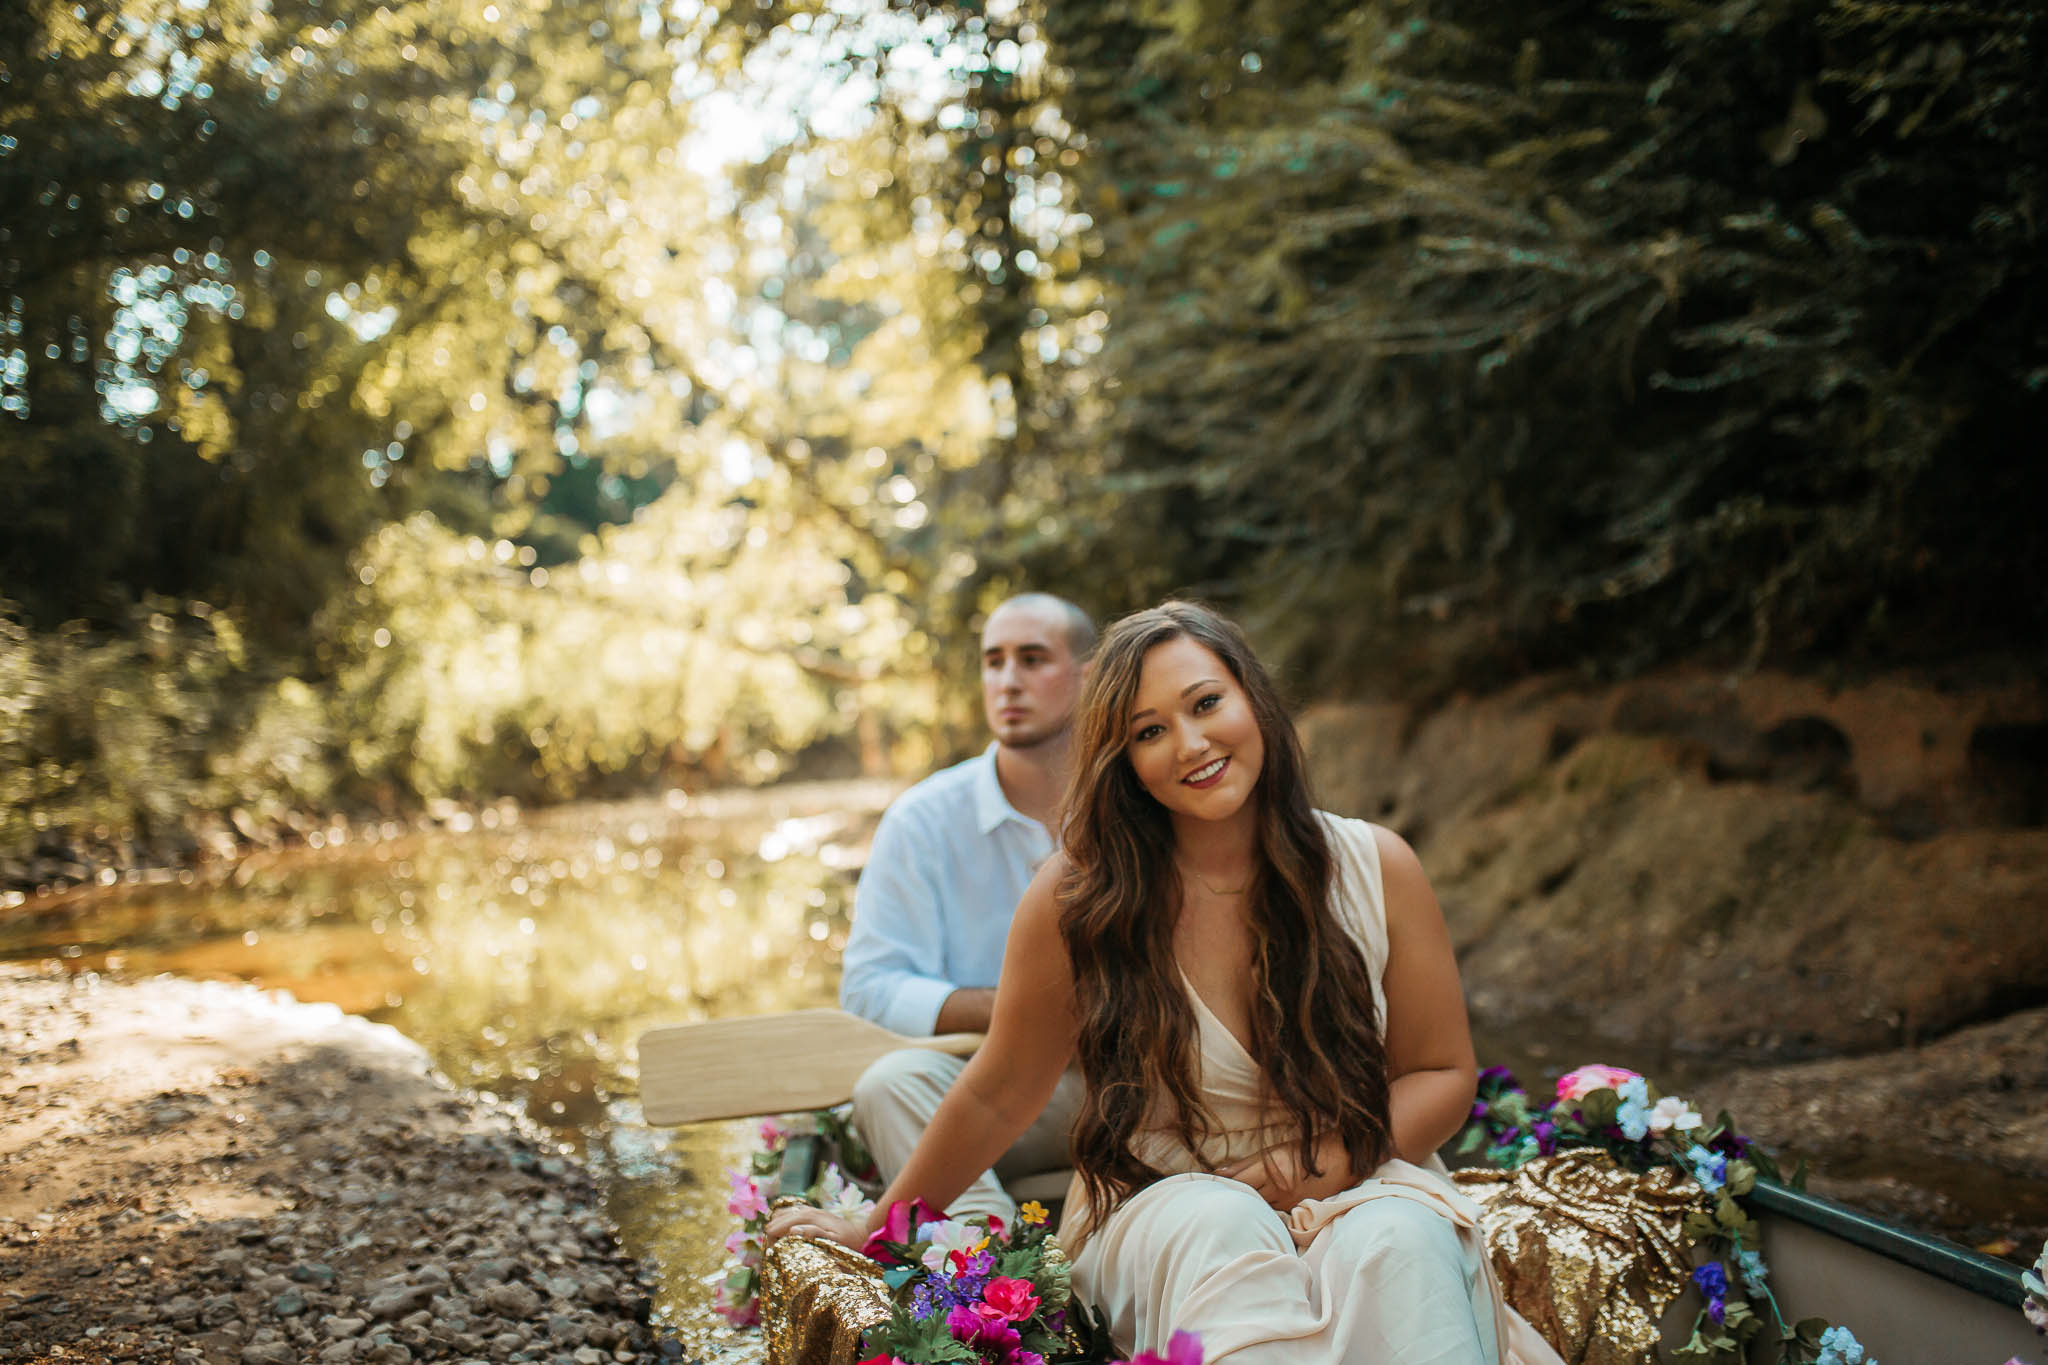 The Hatches | Memphis Tennessee Wedding Photographer | A Rustic Canoe Engagement | memphis-tennessee-wedding-photographer-rustic-canoe-floral-engagement-session-romantic-unique-creek